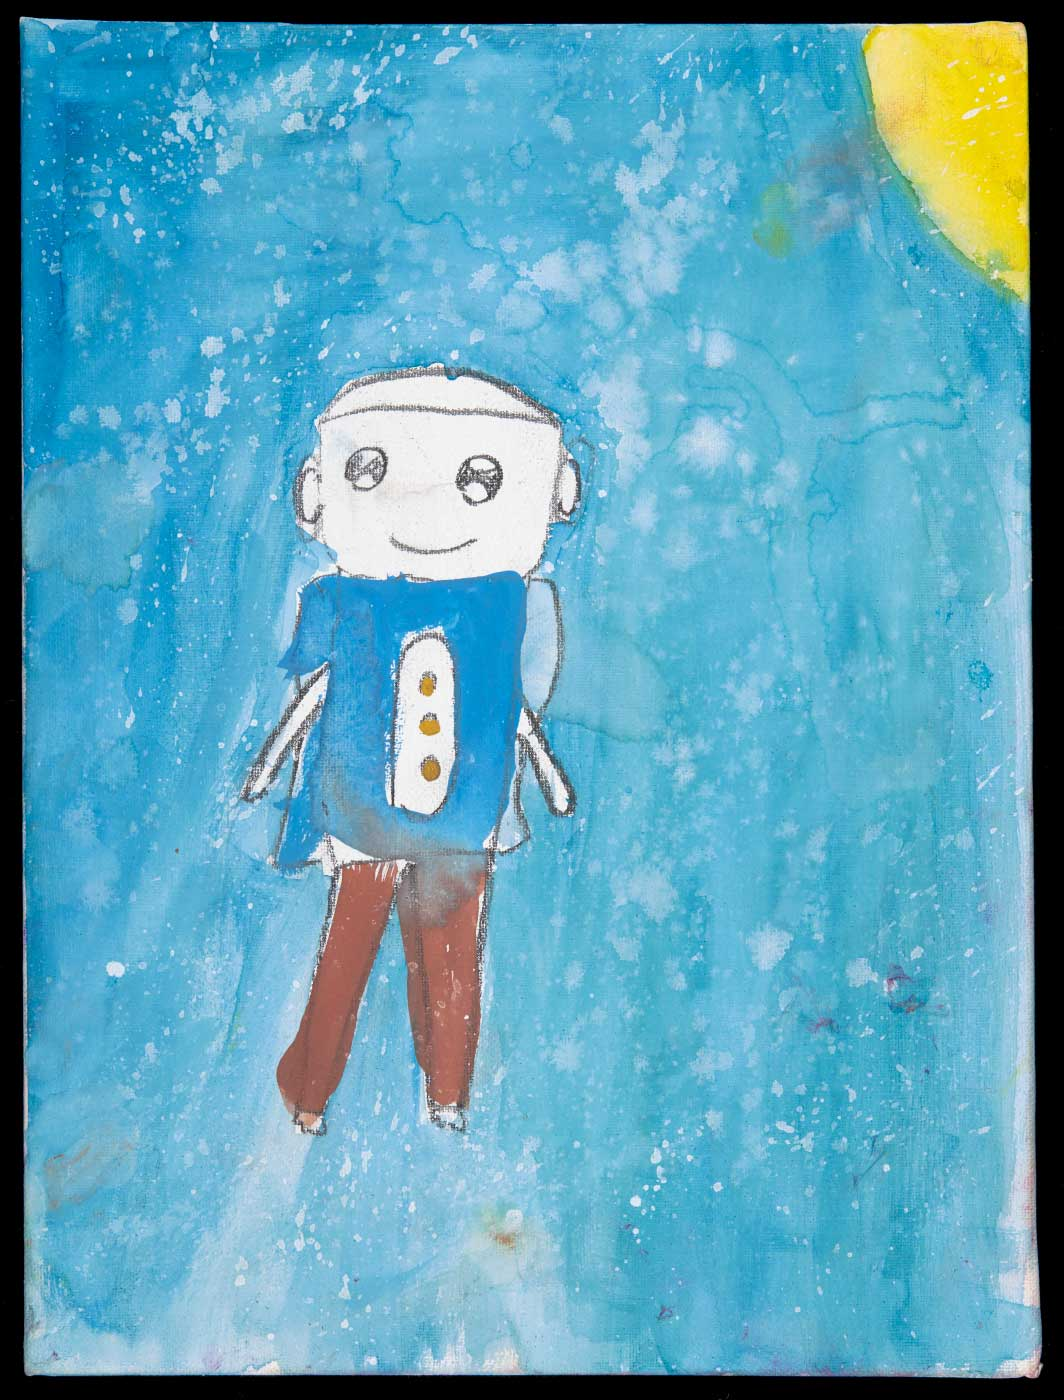 Painting on cotton canvas board, depicting a figure with a blue shirt and brown trousers, a blue background, and a yellow sun in the tip right corner. - click to view larger image